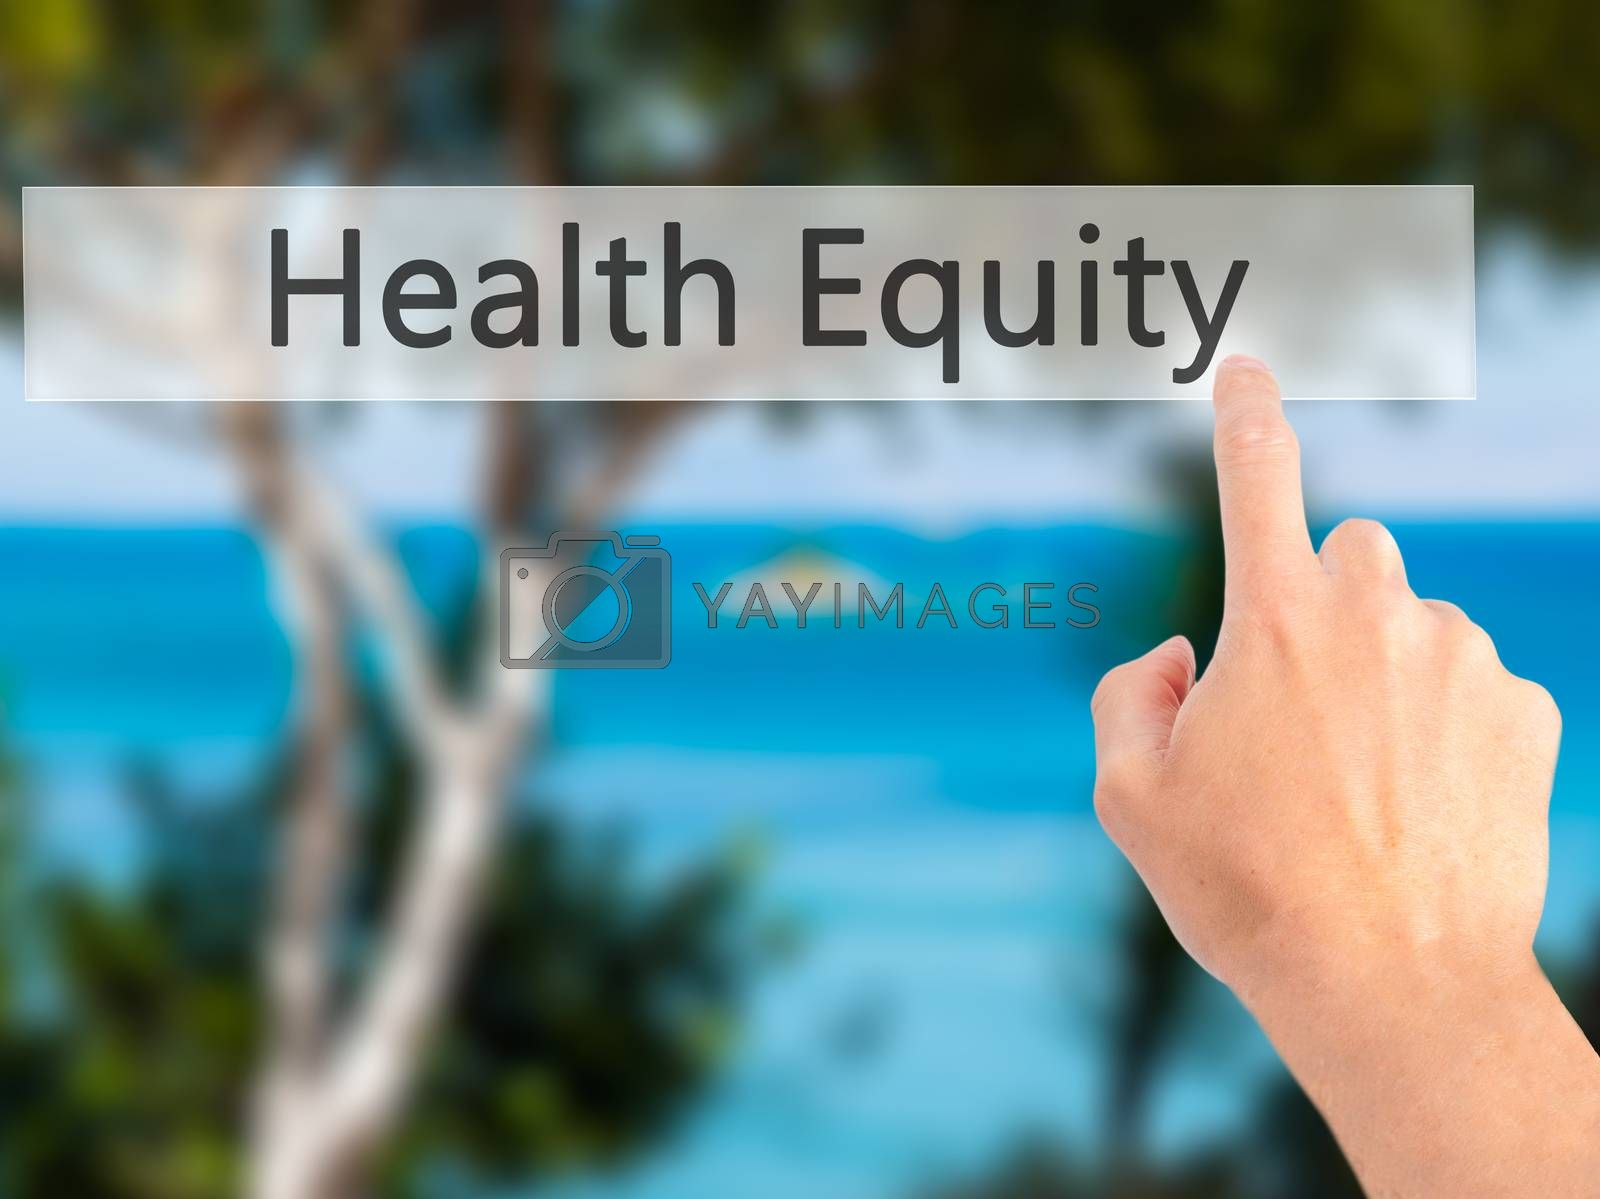 Health Equity - Hand pressing a button on blurred background con by jackald